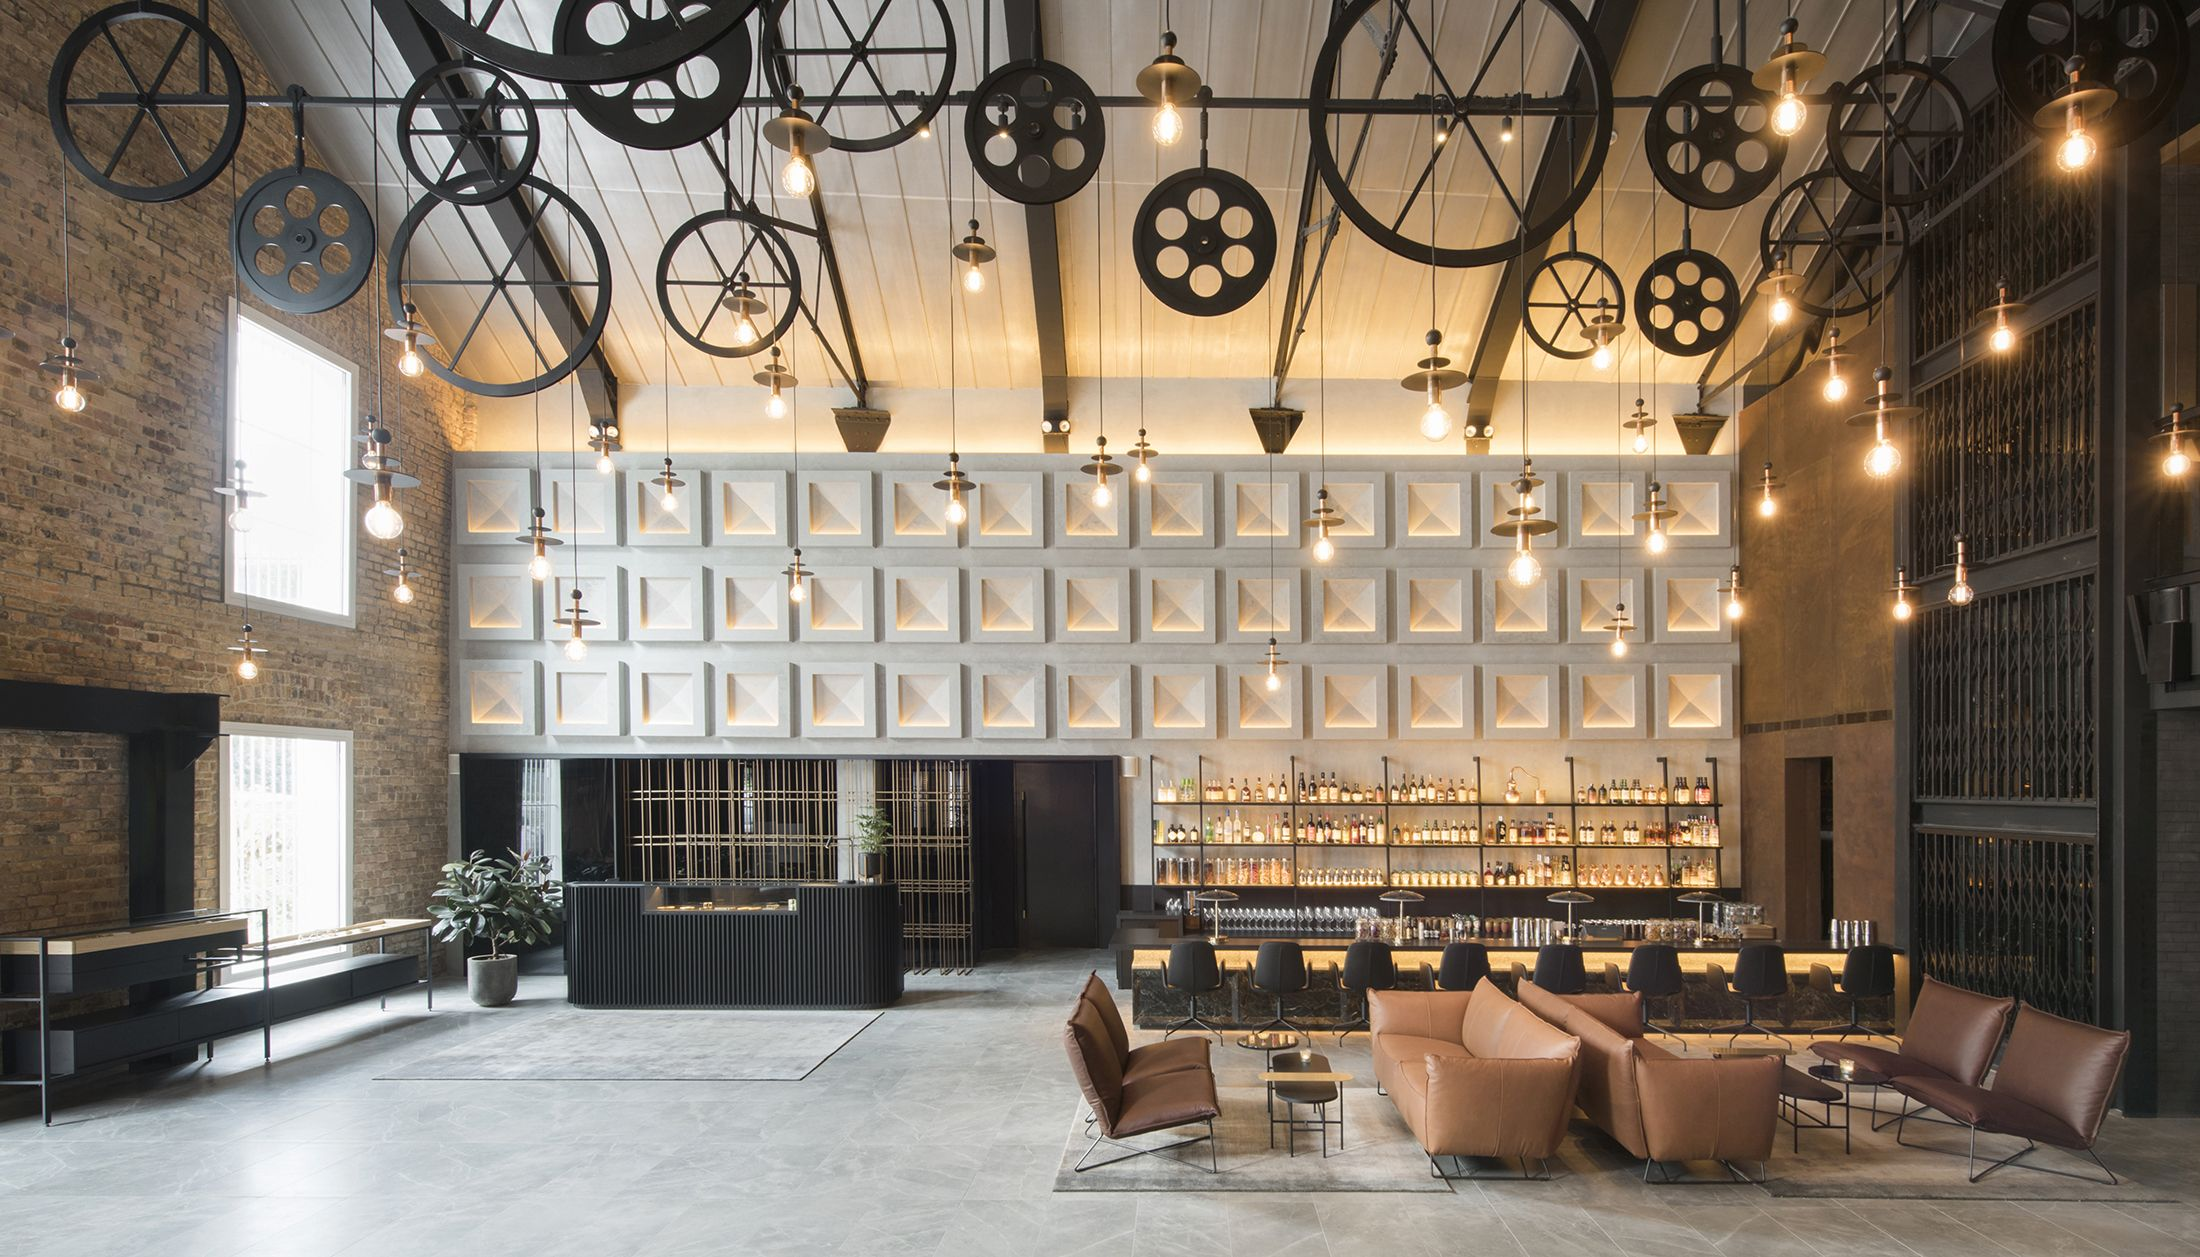 12 of the best design hotels in the world